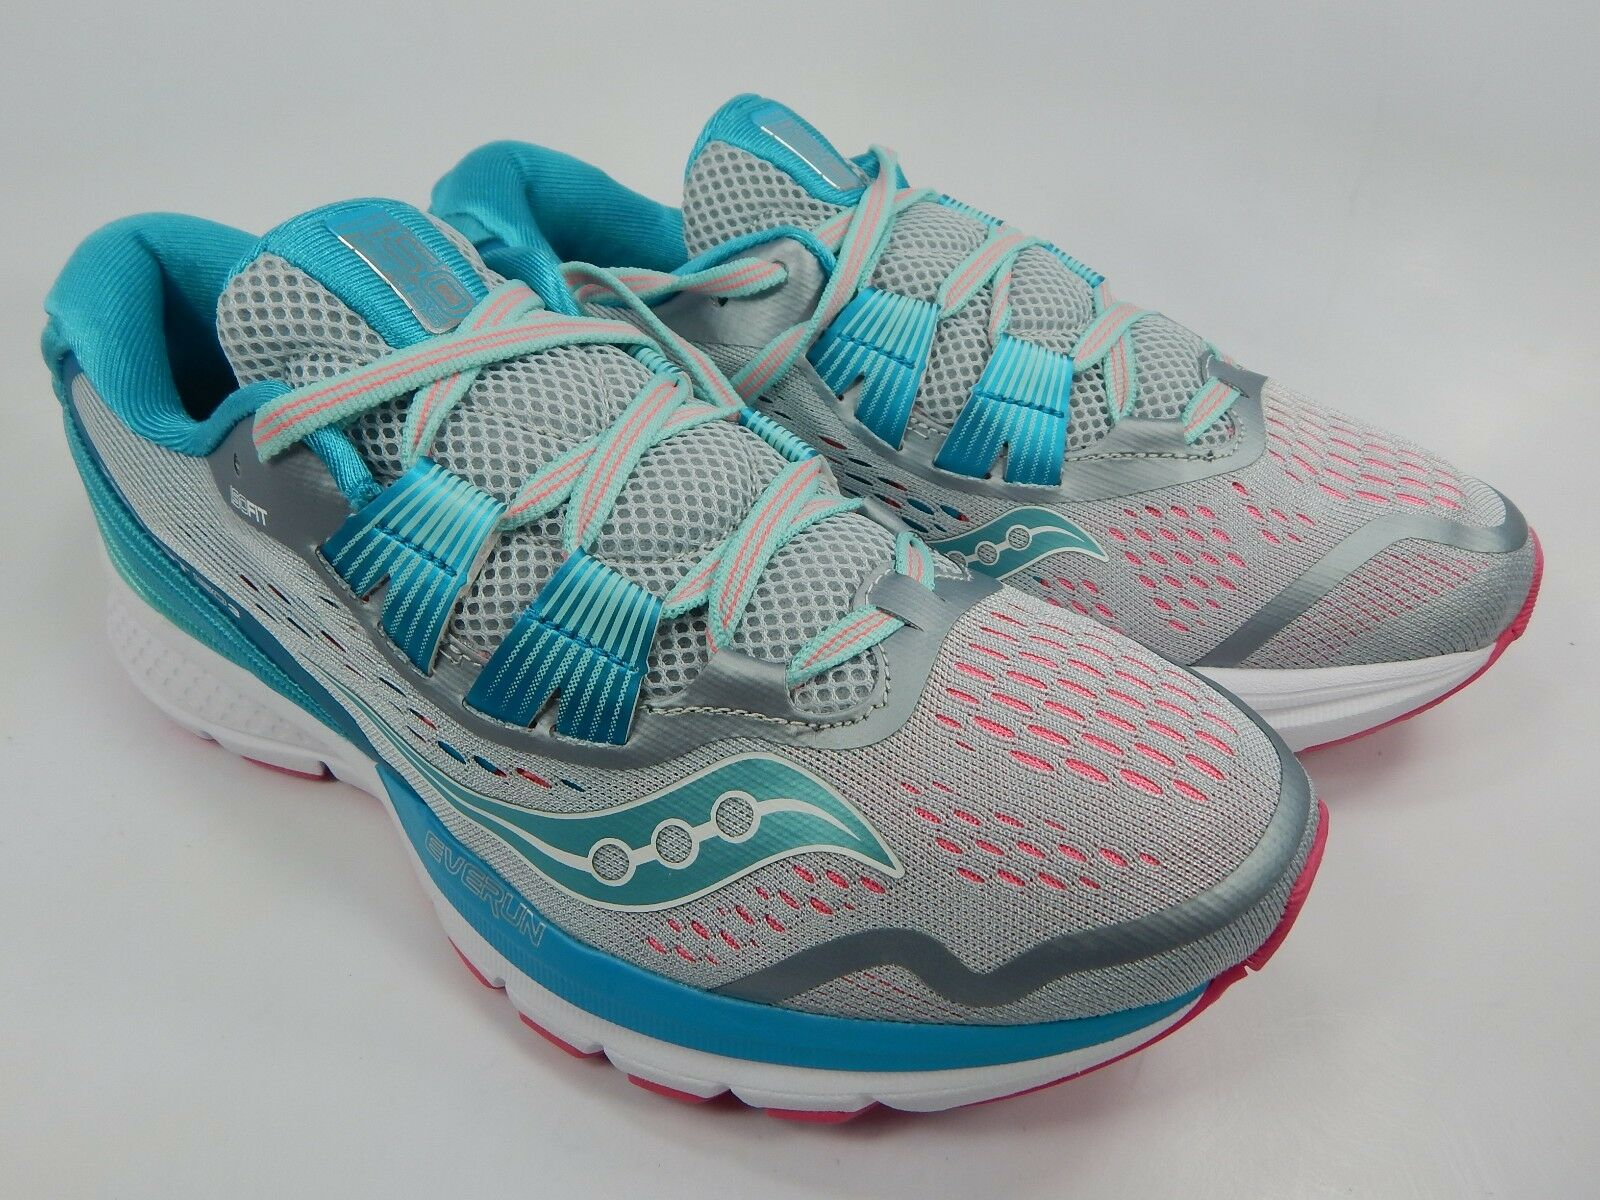 Saucony Zealot ISO 3 femmes  Running  Chaussures